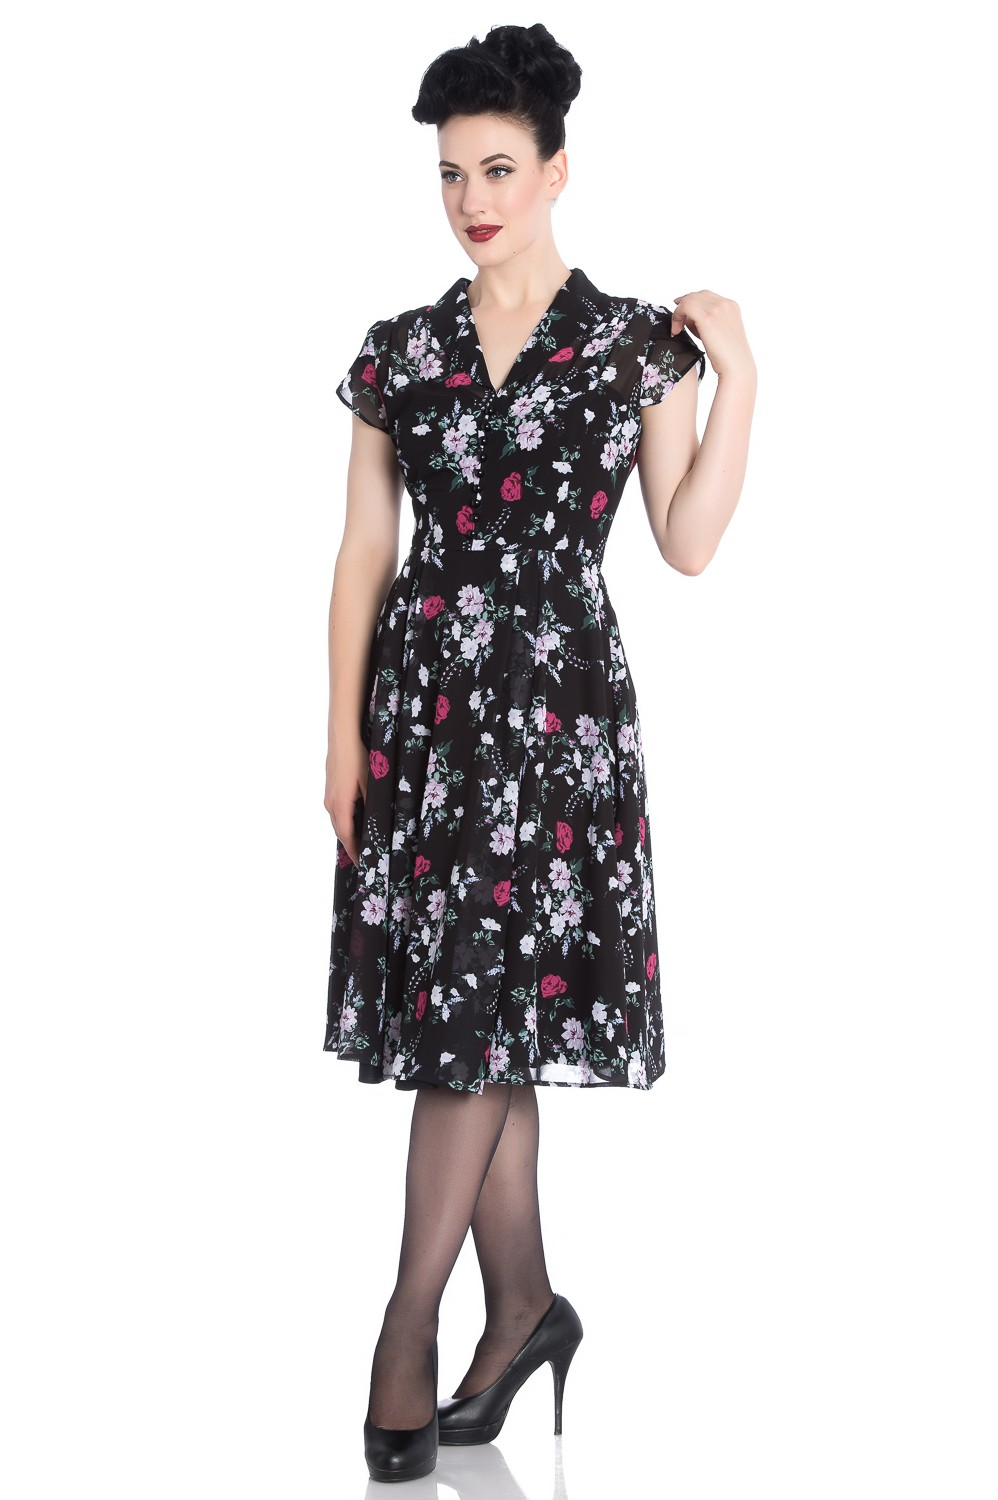 belleville-dress, blk